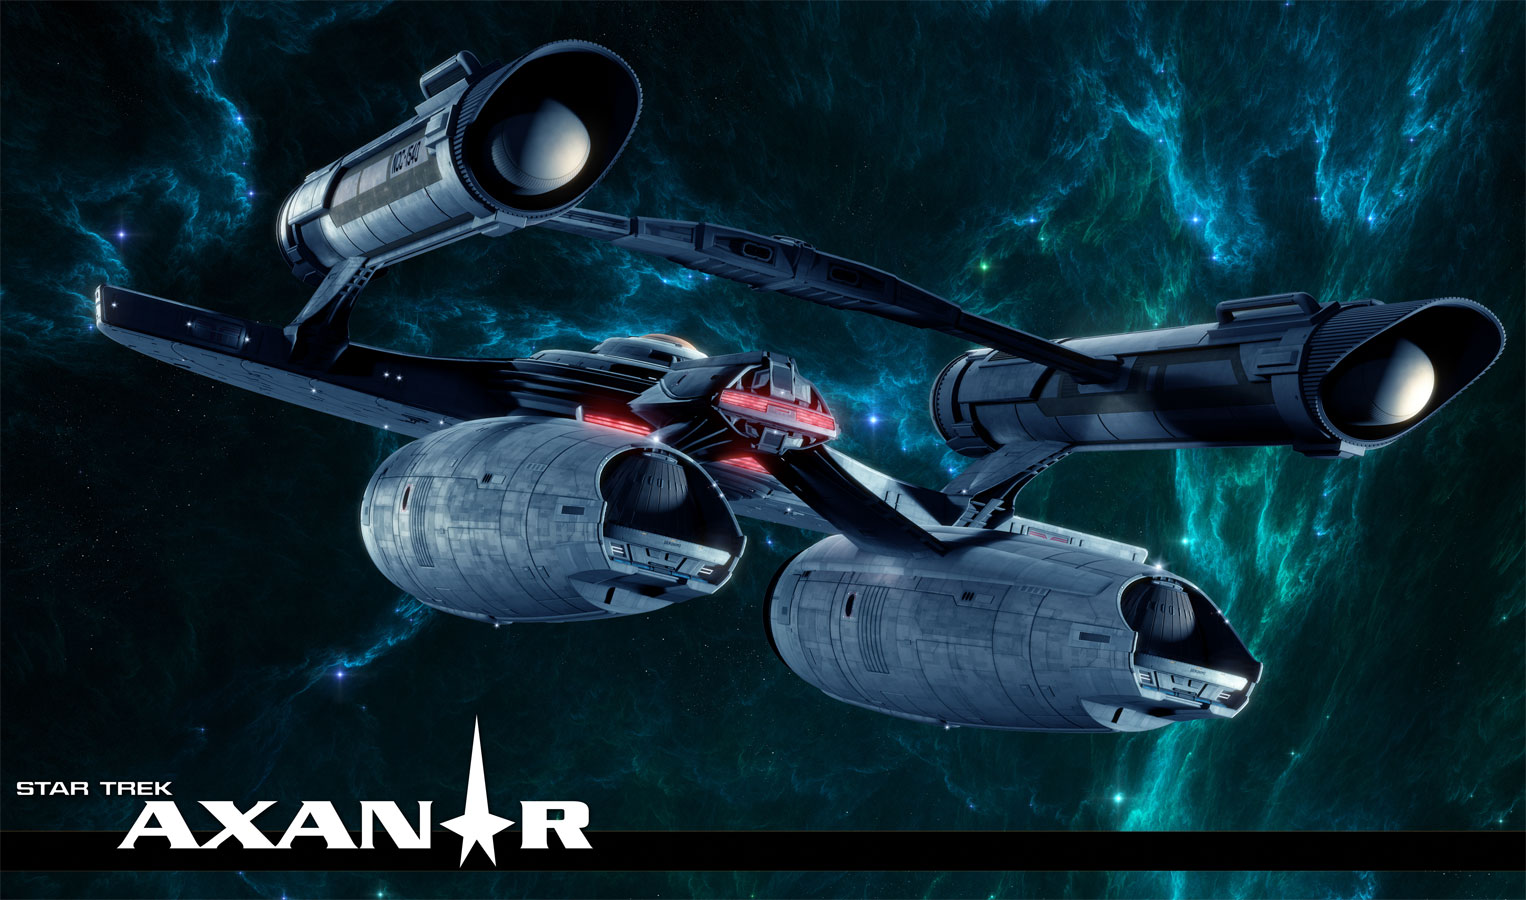 jj abrams brings back axanar for fans 2016 images